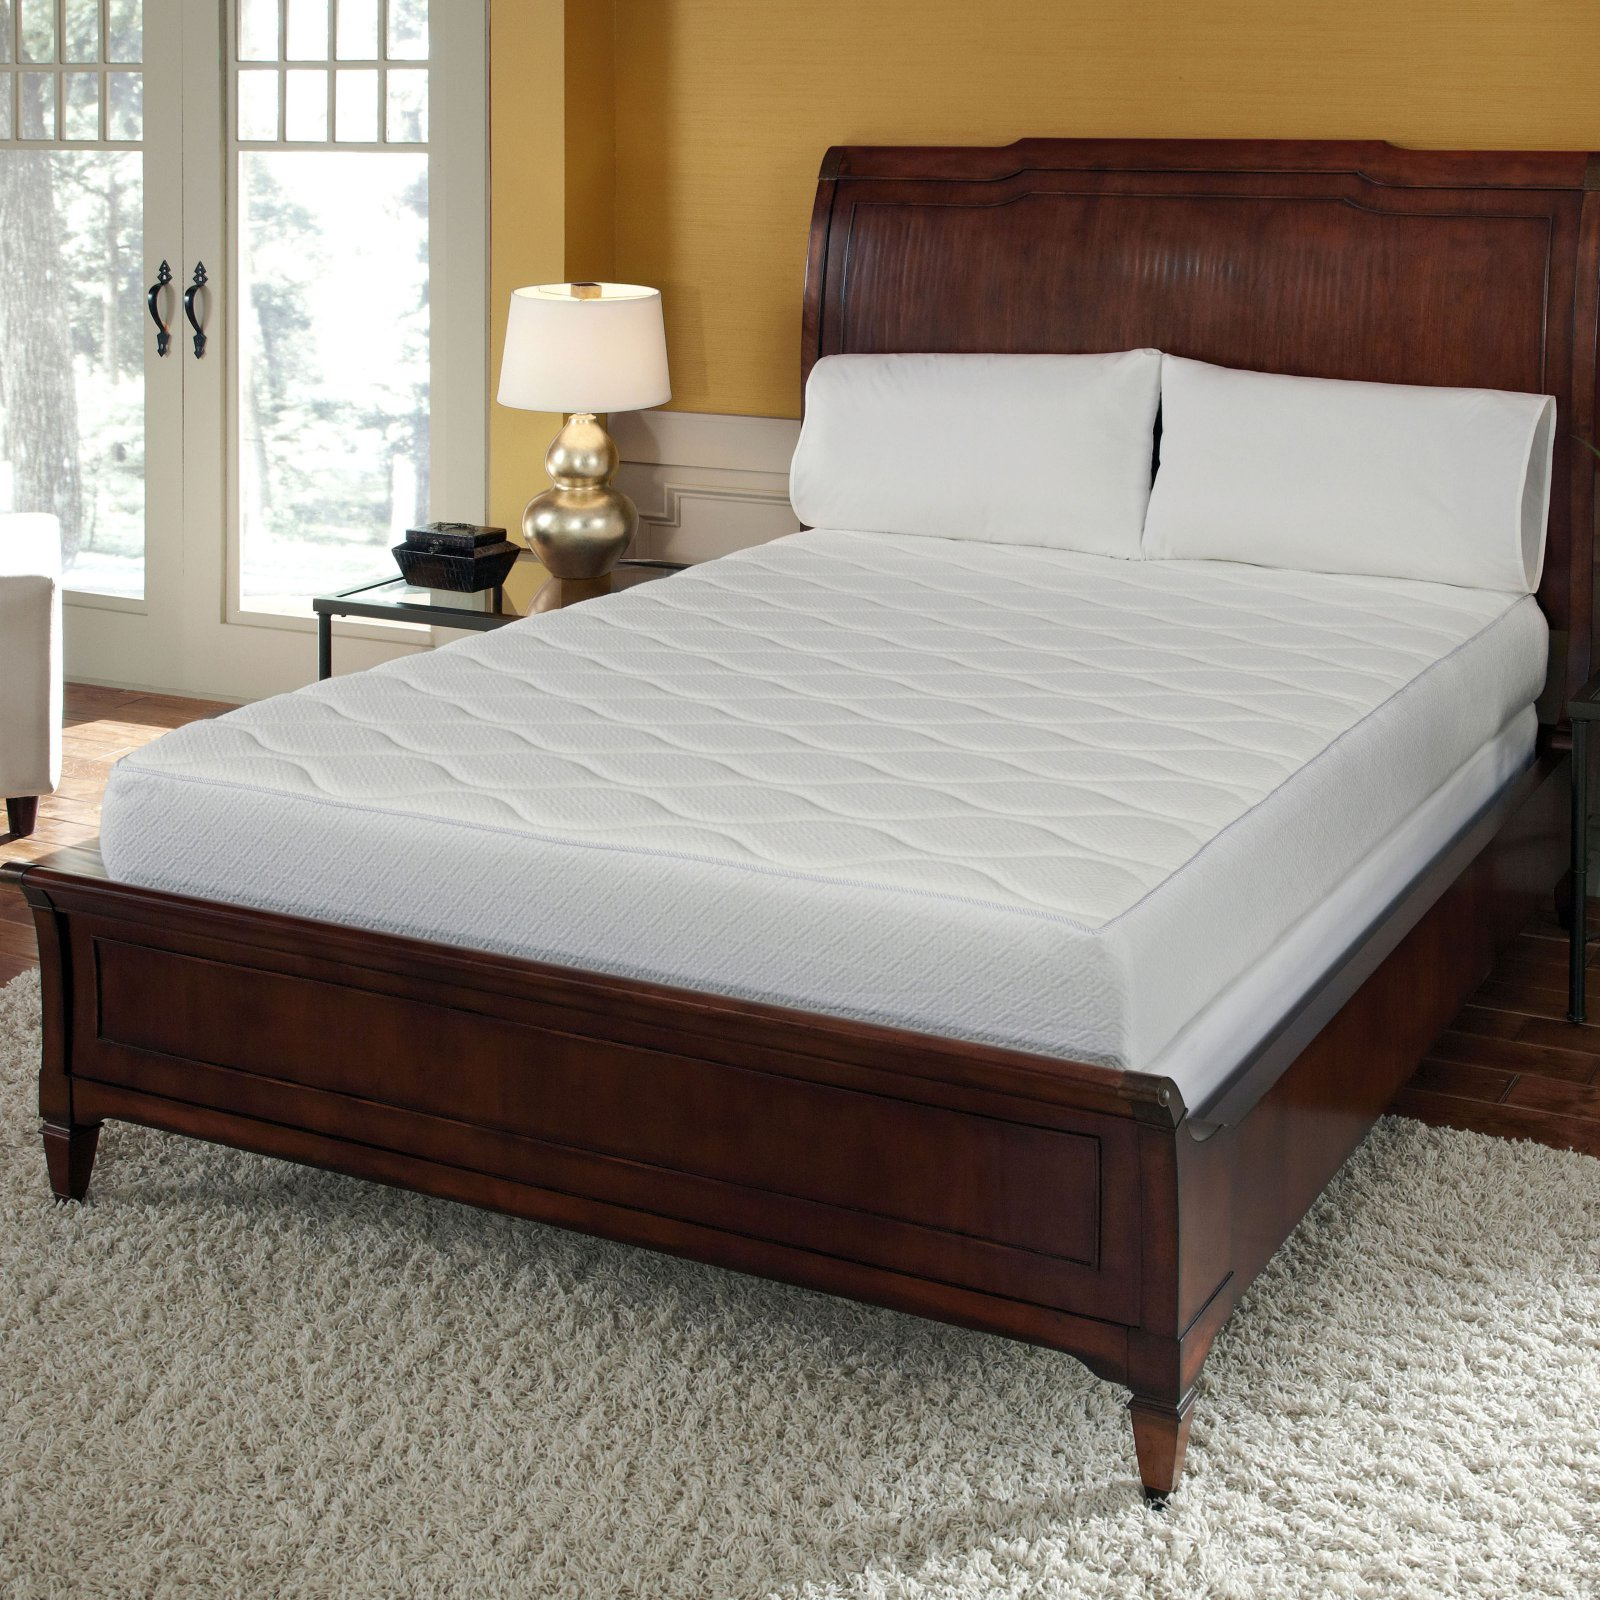 Pure Rest Quilted Top Memory Foam Mattress